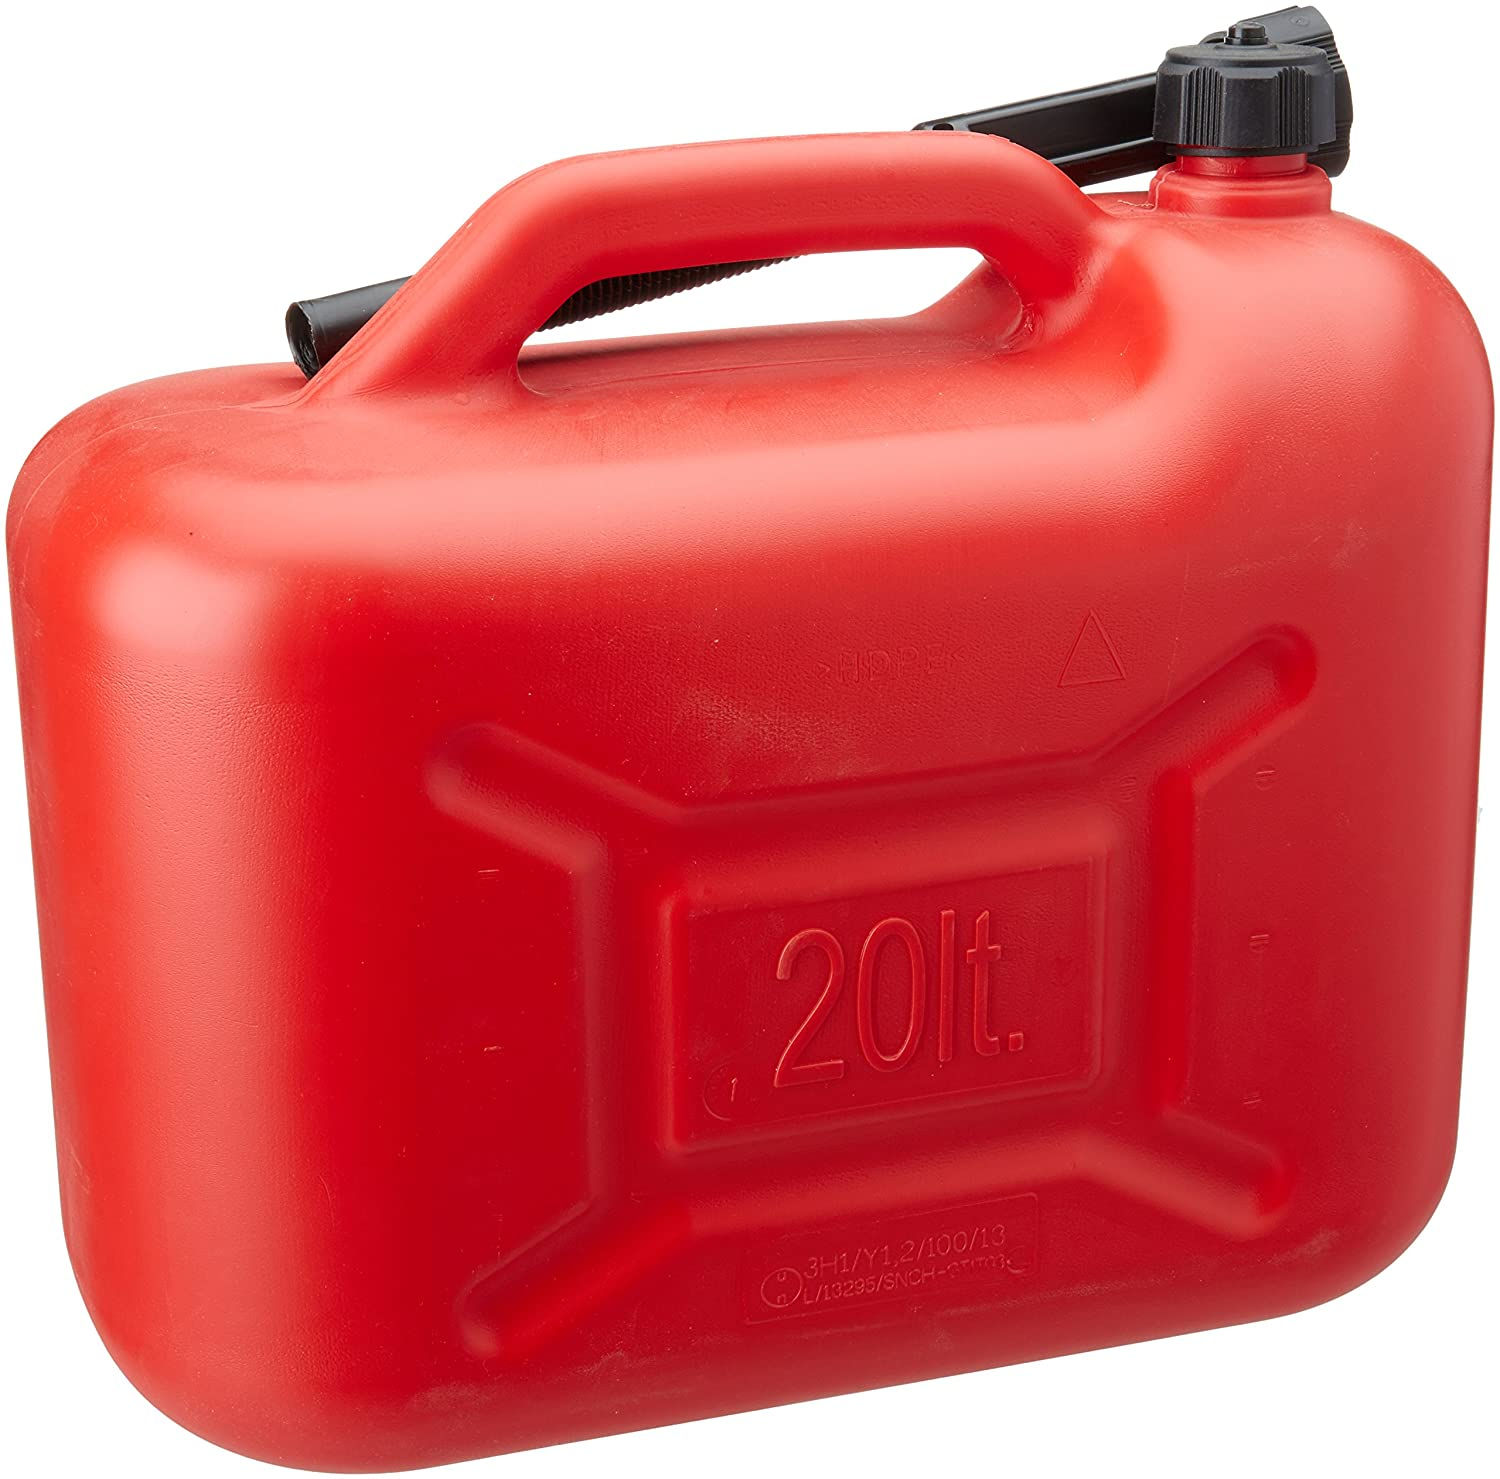 Bottari SpA 28067 Fuel Can with Spout Homologated 20 L